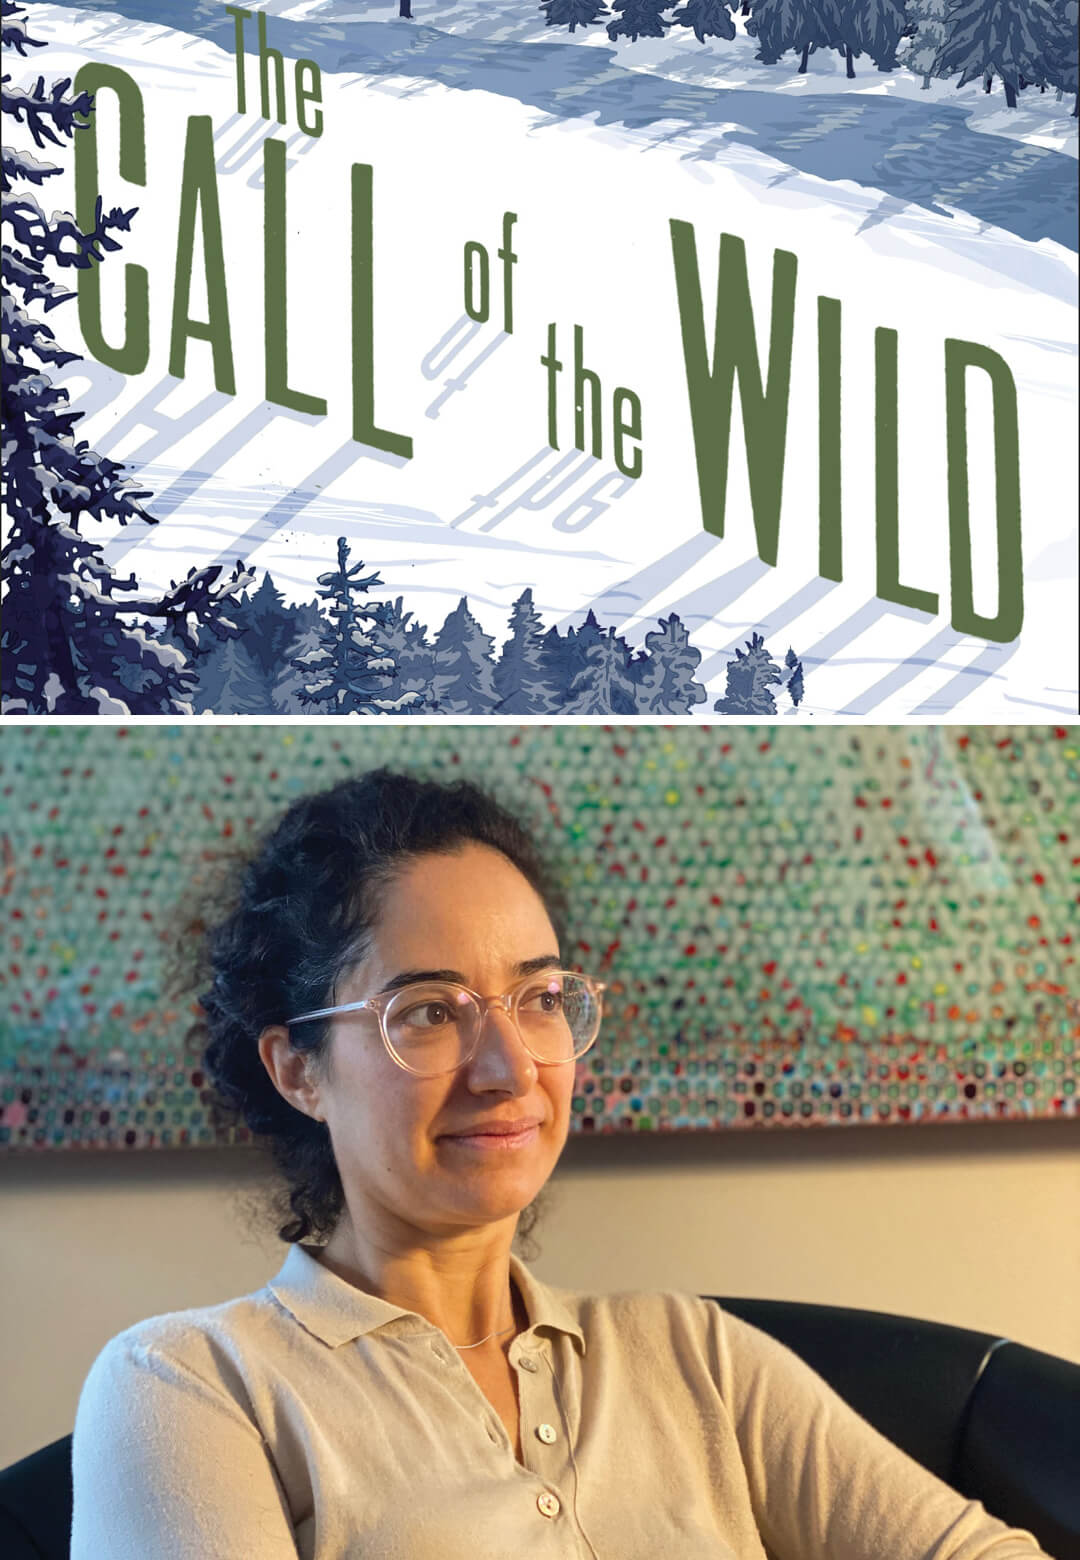 Left: 'The Call of the Wild by Jack London', Sandy Attia of MoDus Architects | Sandy Attia Matteo Scagnol Modus Architects | What Am I Reading| STIRworld